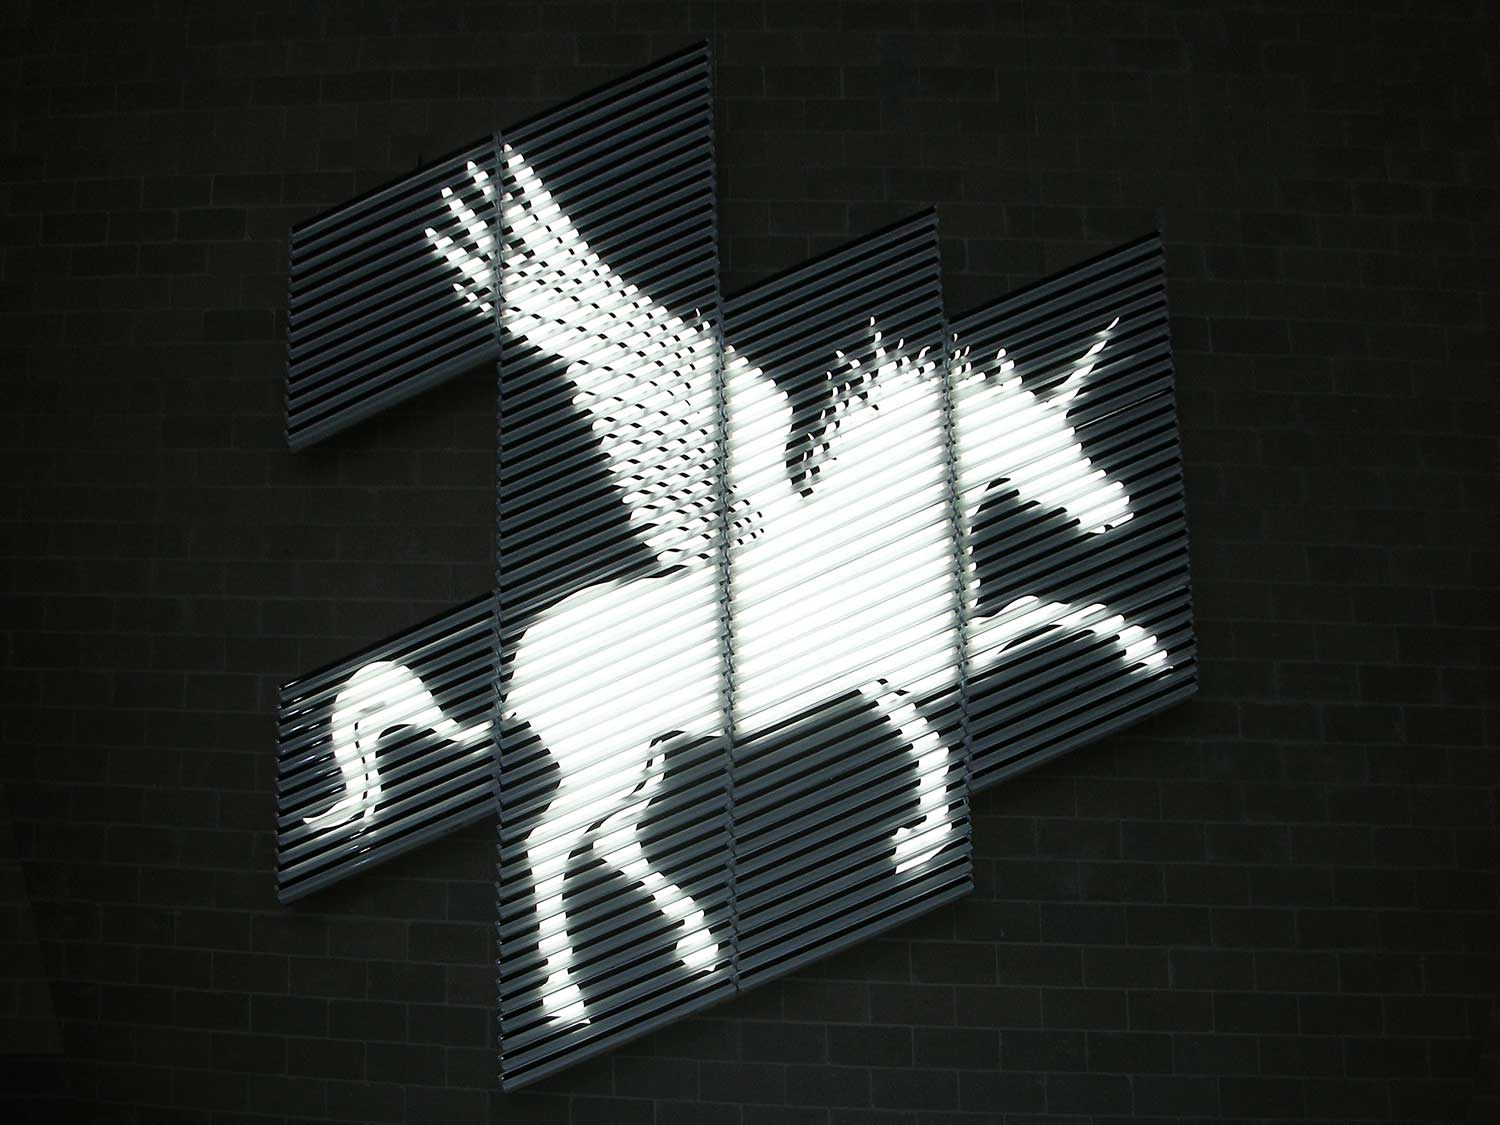 'The Striped Unicorn' light installation | Yellowtrace.